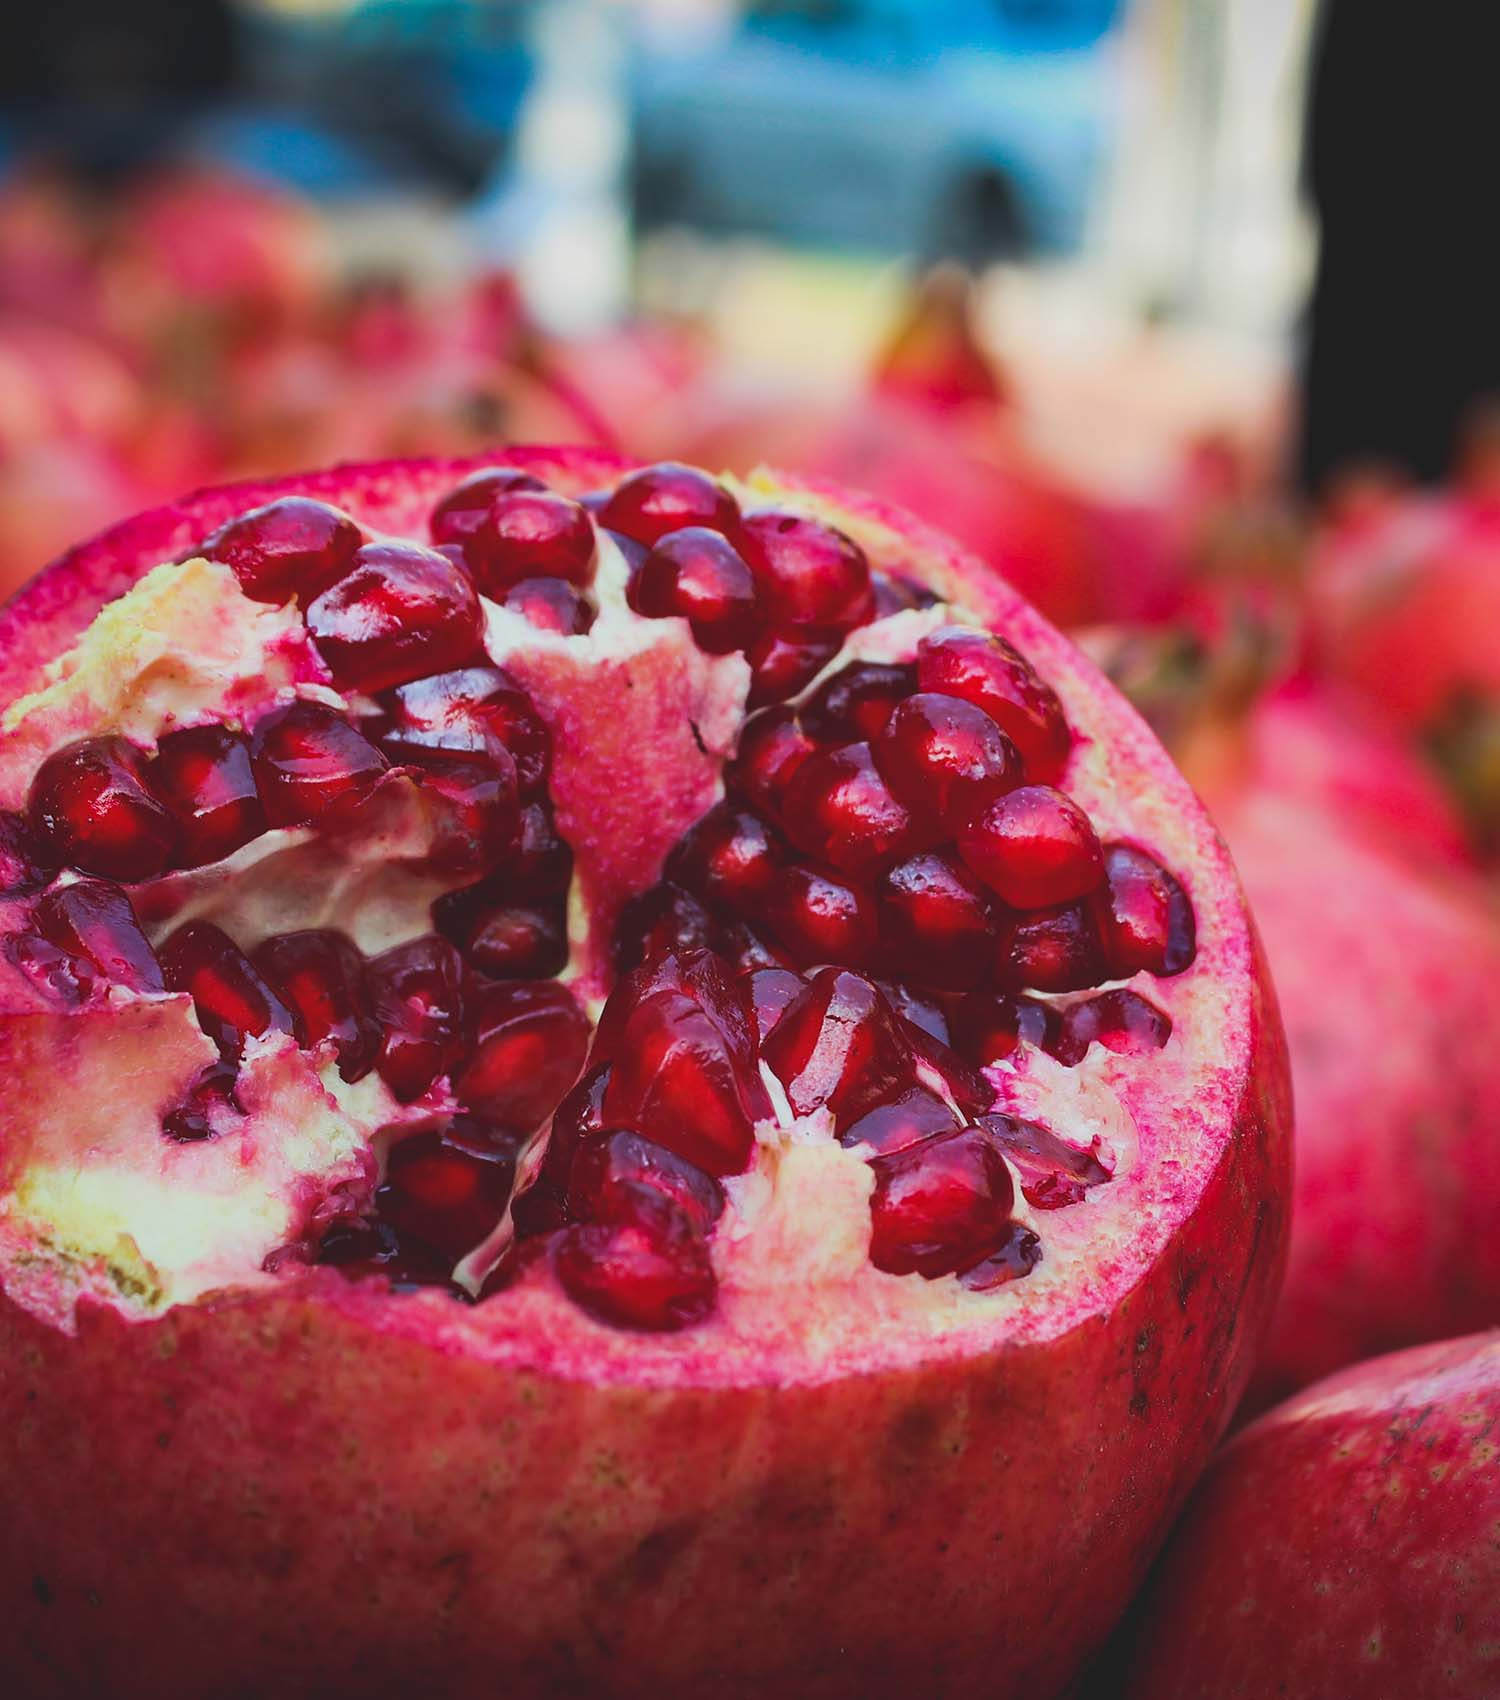 Cut pomegranates with many seeds as symbol of fertility and life